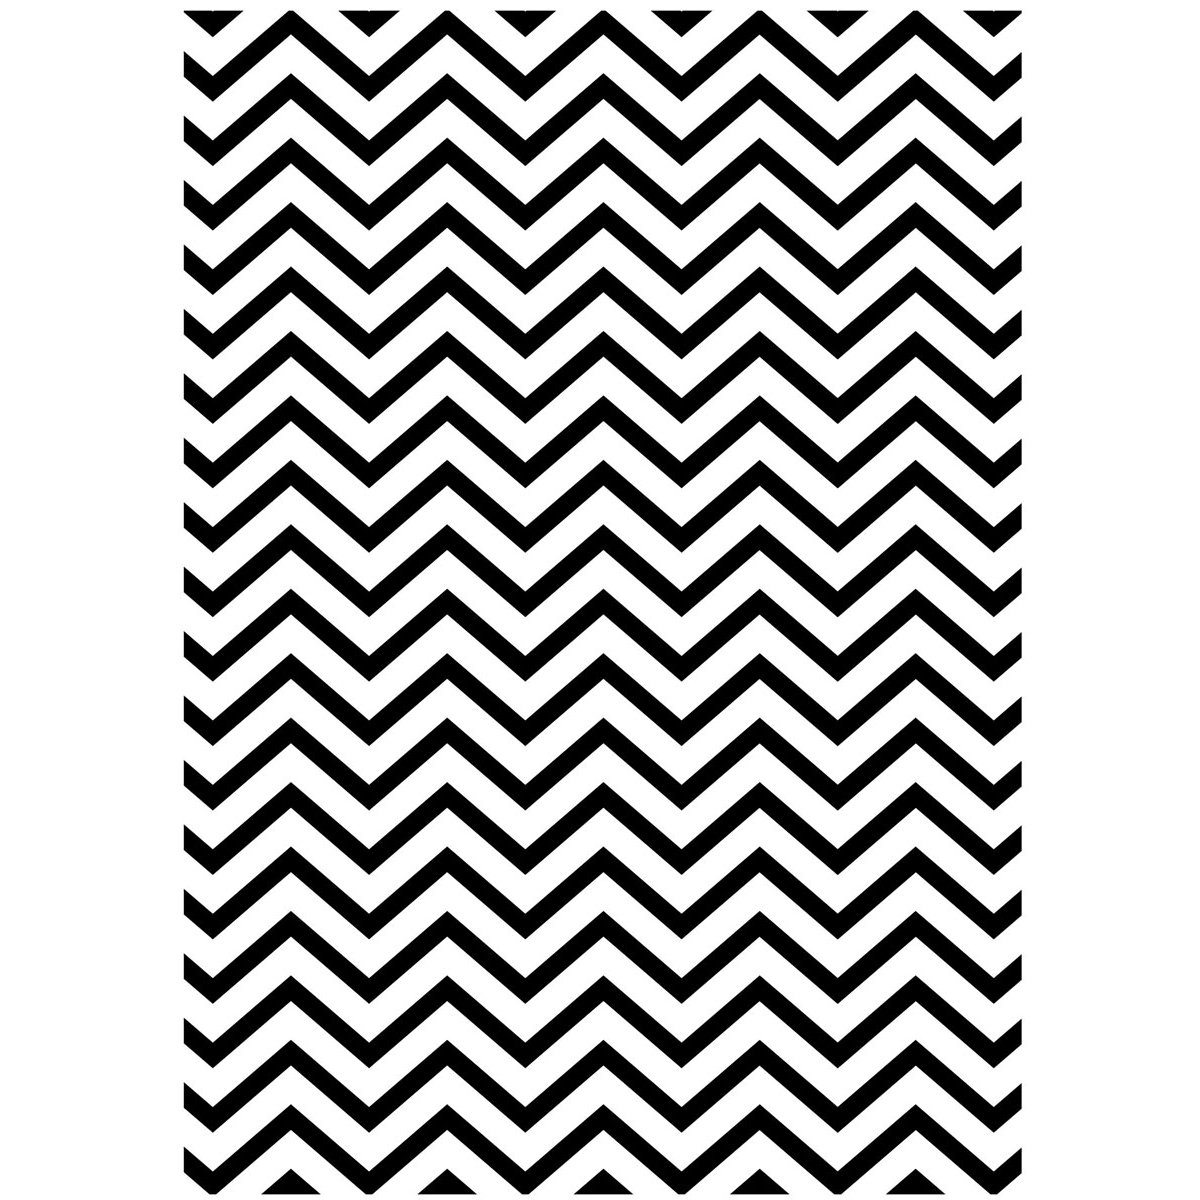 Darice 1218-96 Embossing Folder, 5 by 7-Inch, Chevron Background Design